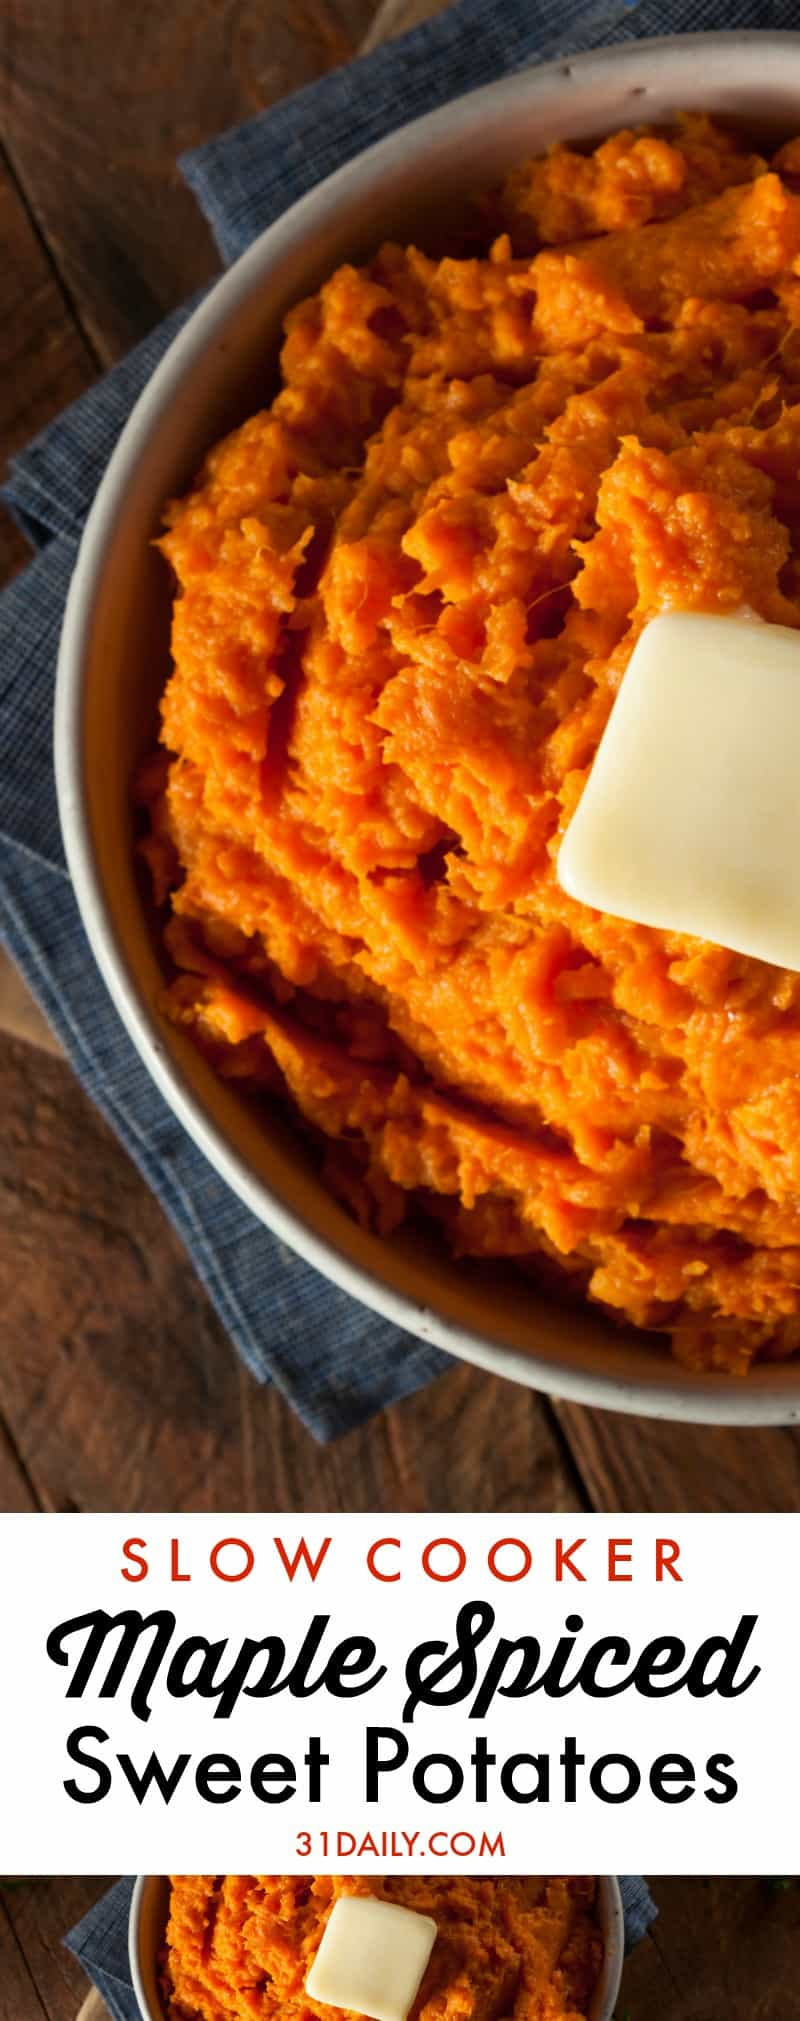 Maple Spiced Slow Cooker Mashed Sweet Potatoes | 31Daily.com